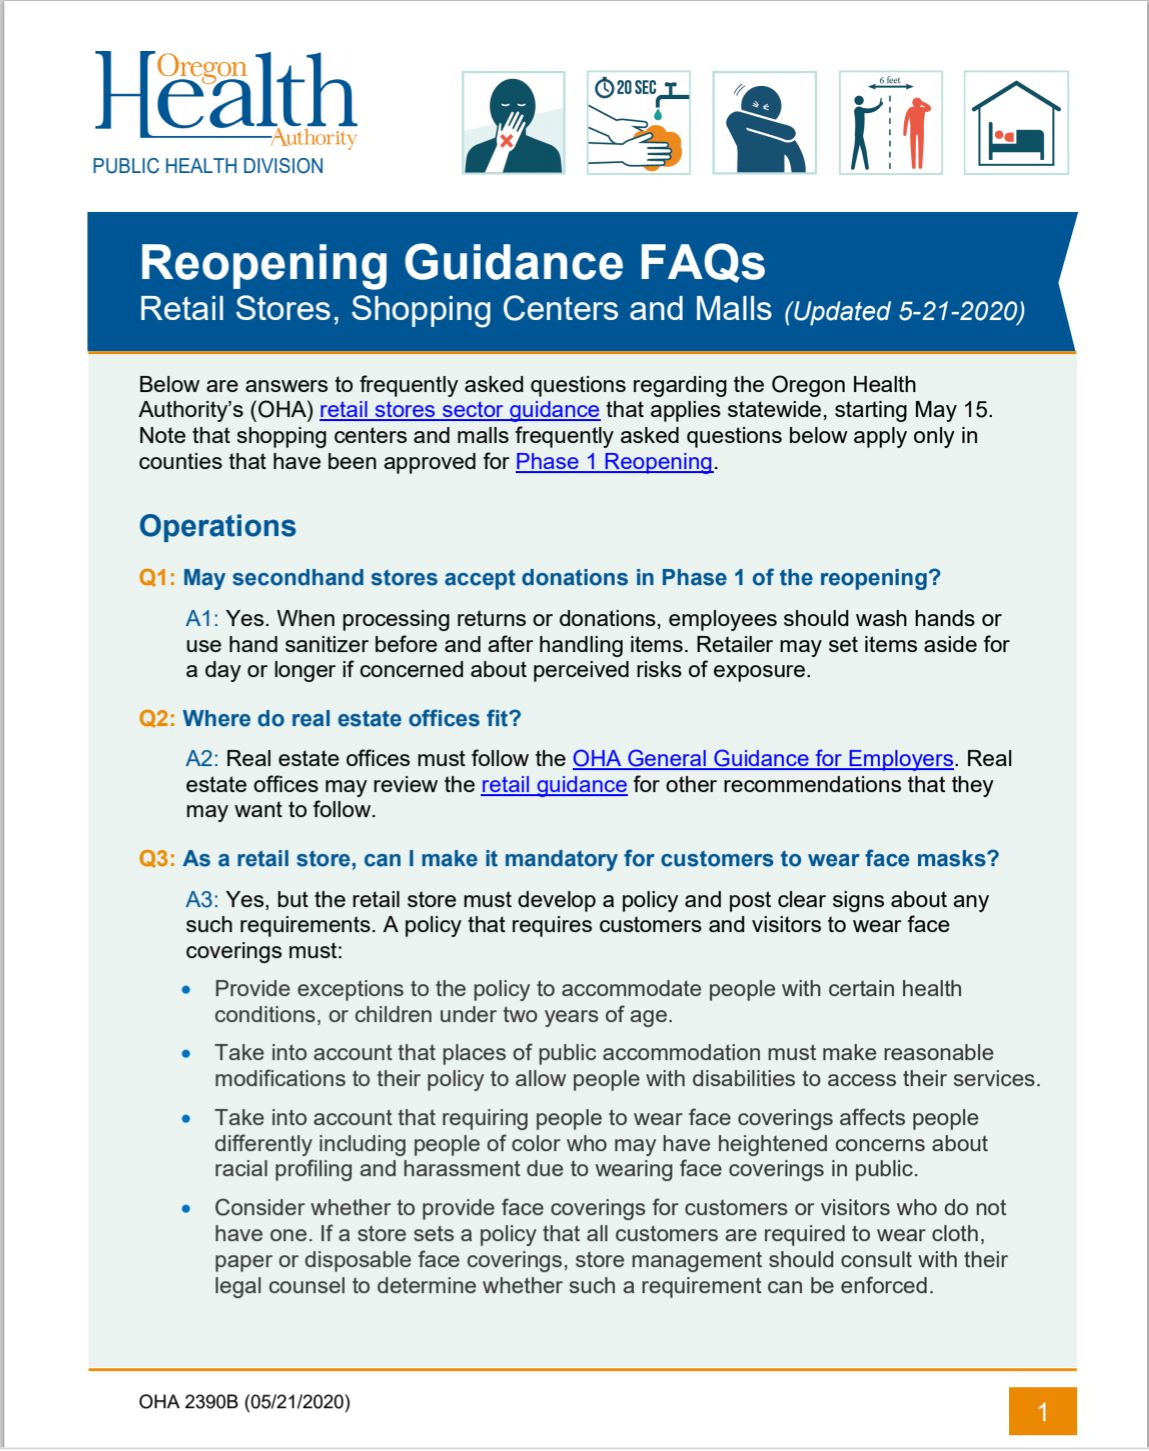 Retail, Shopping Centers Reopening FAQs